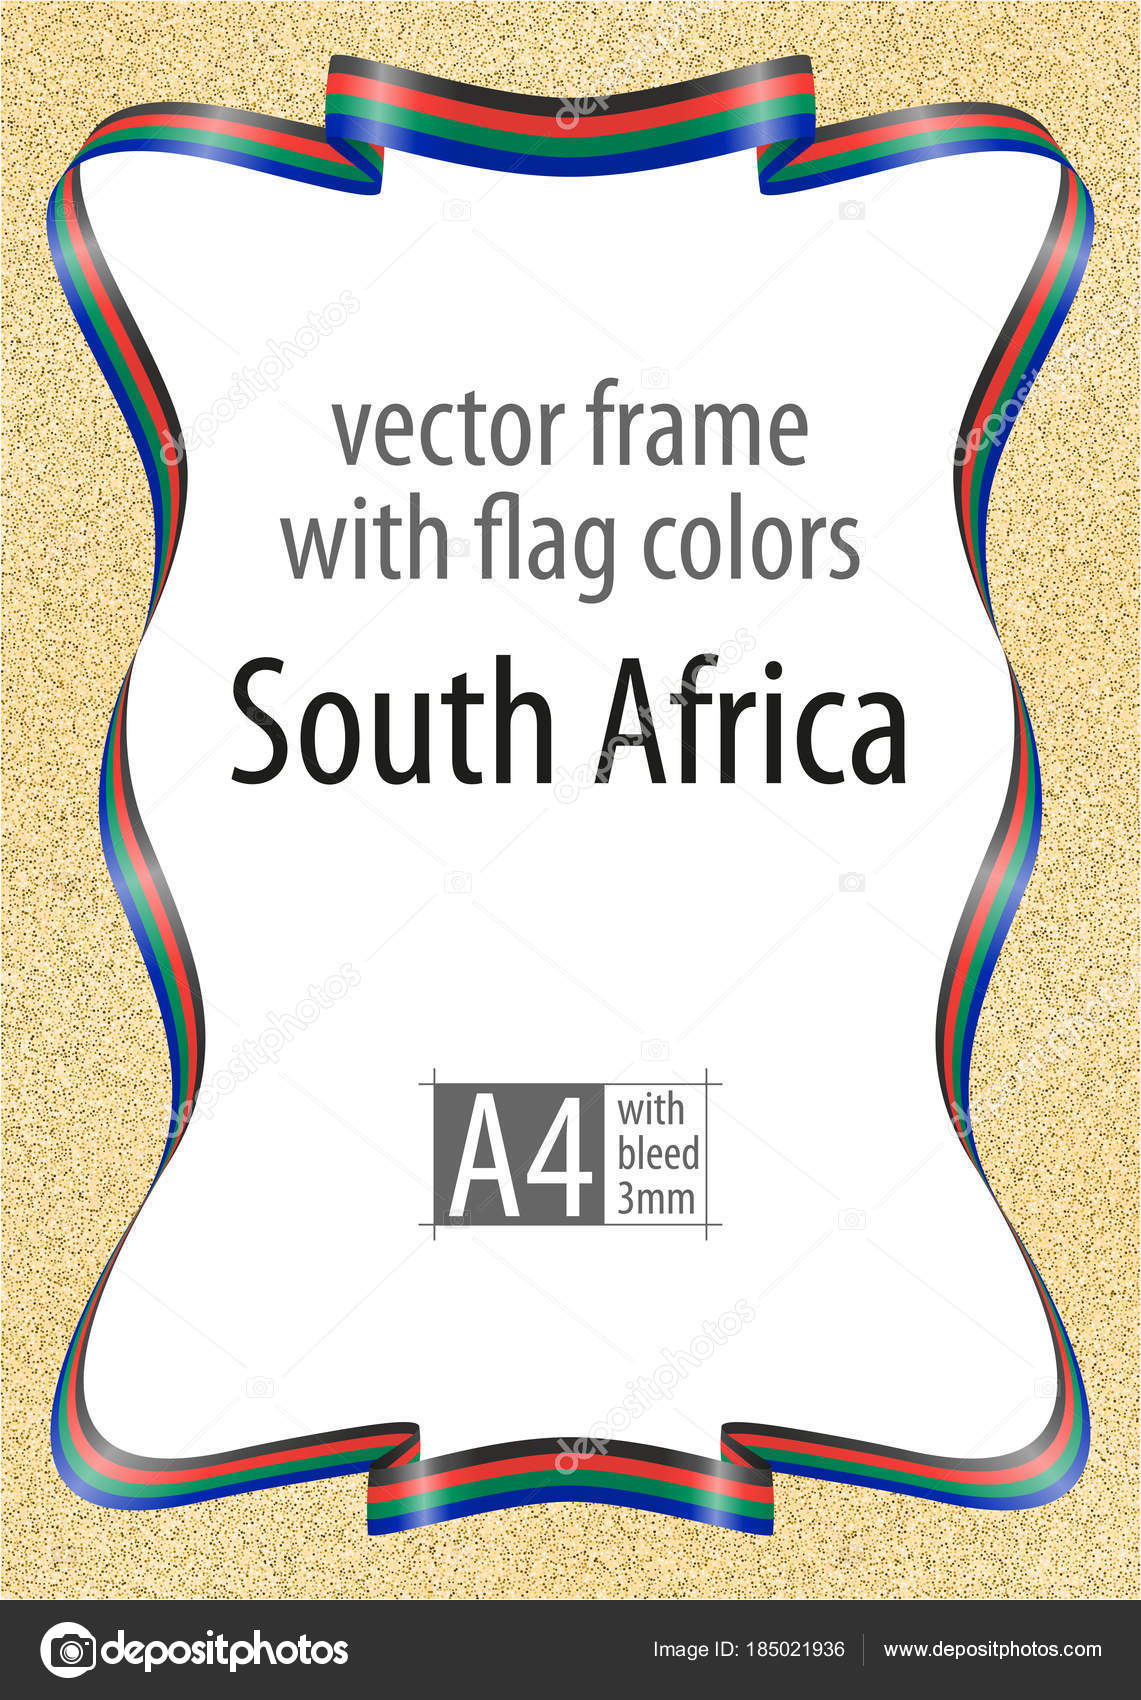 Frame And Border Of Ribbon With The Colors Of The South